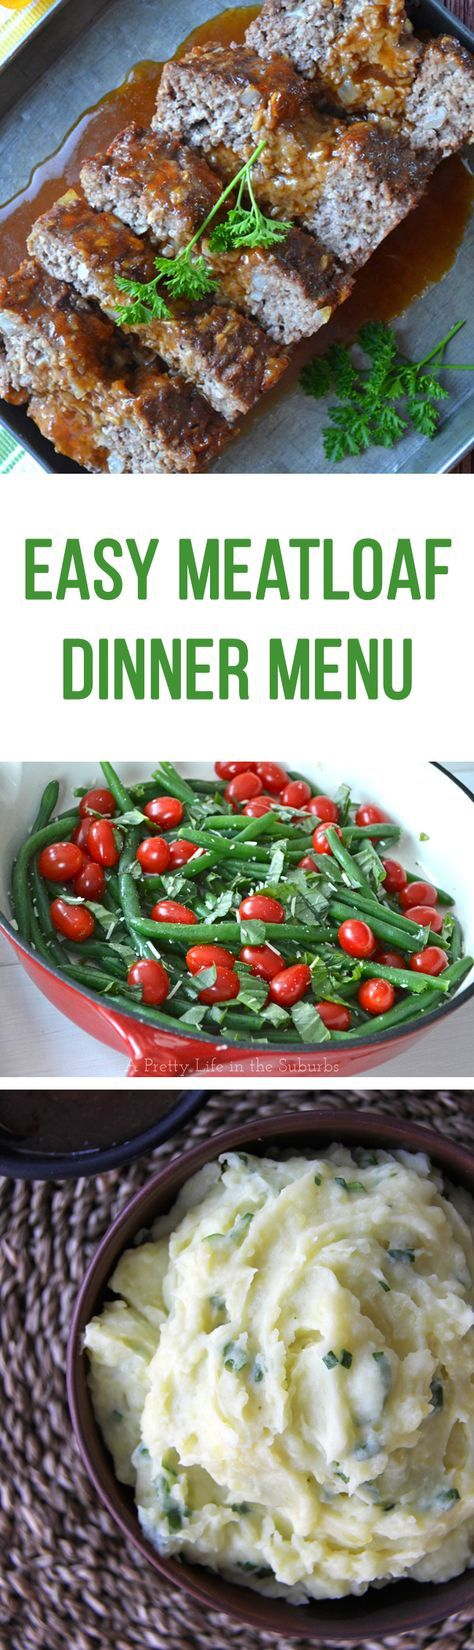 25 Best Ideas About Side Dishes For Meatloaf On Pinterest